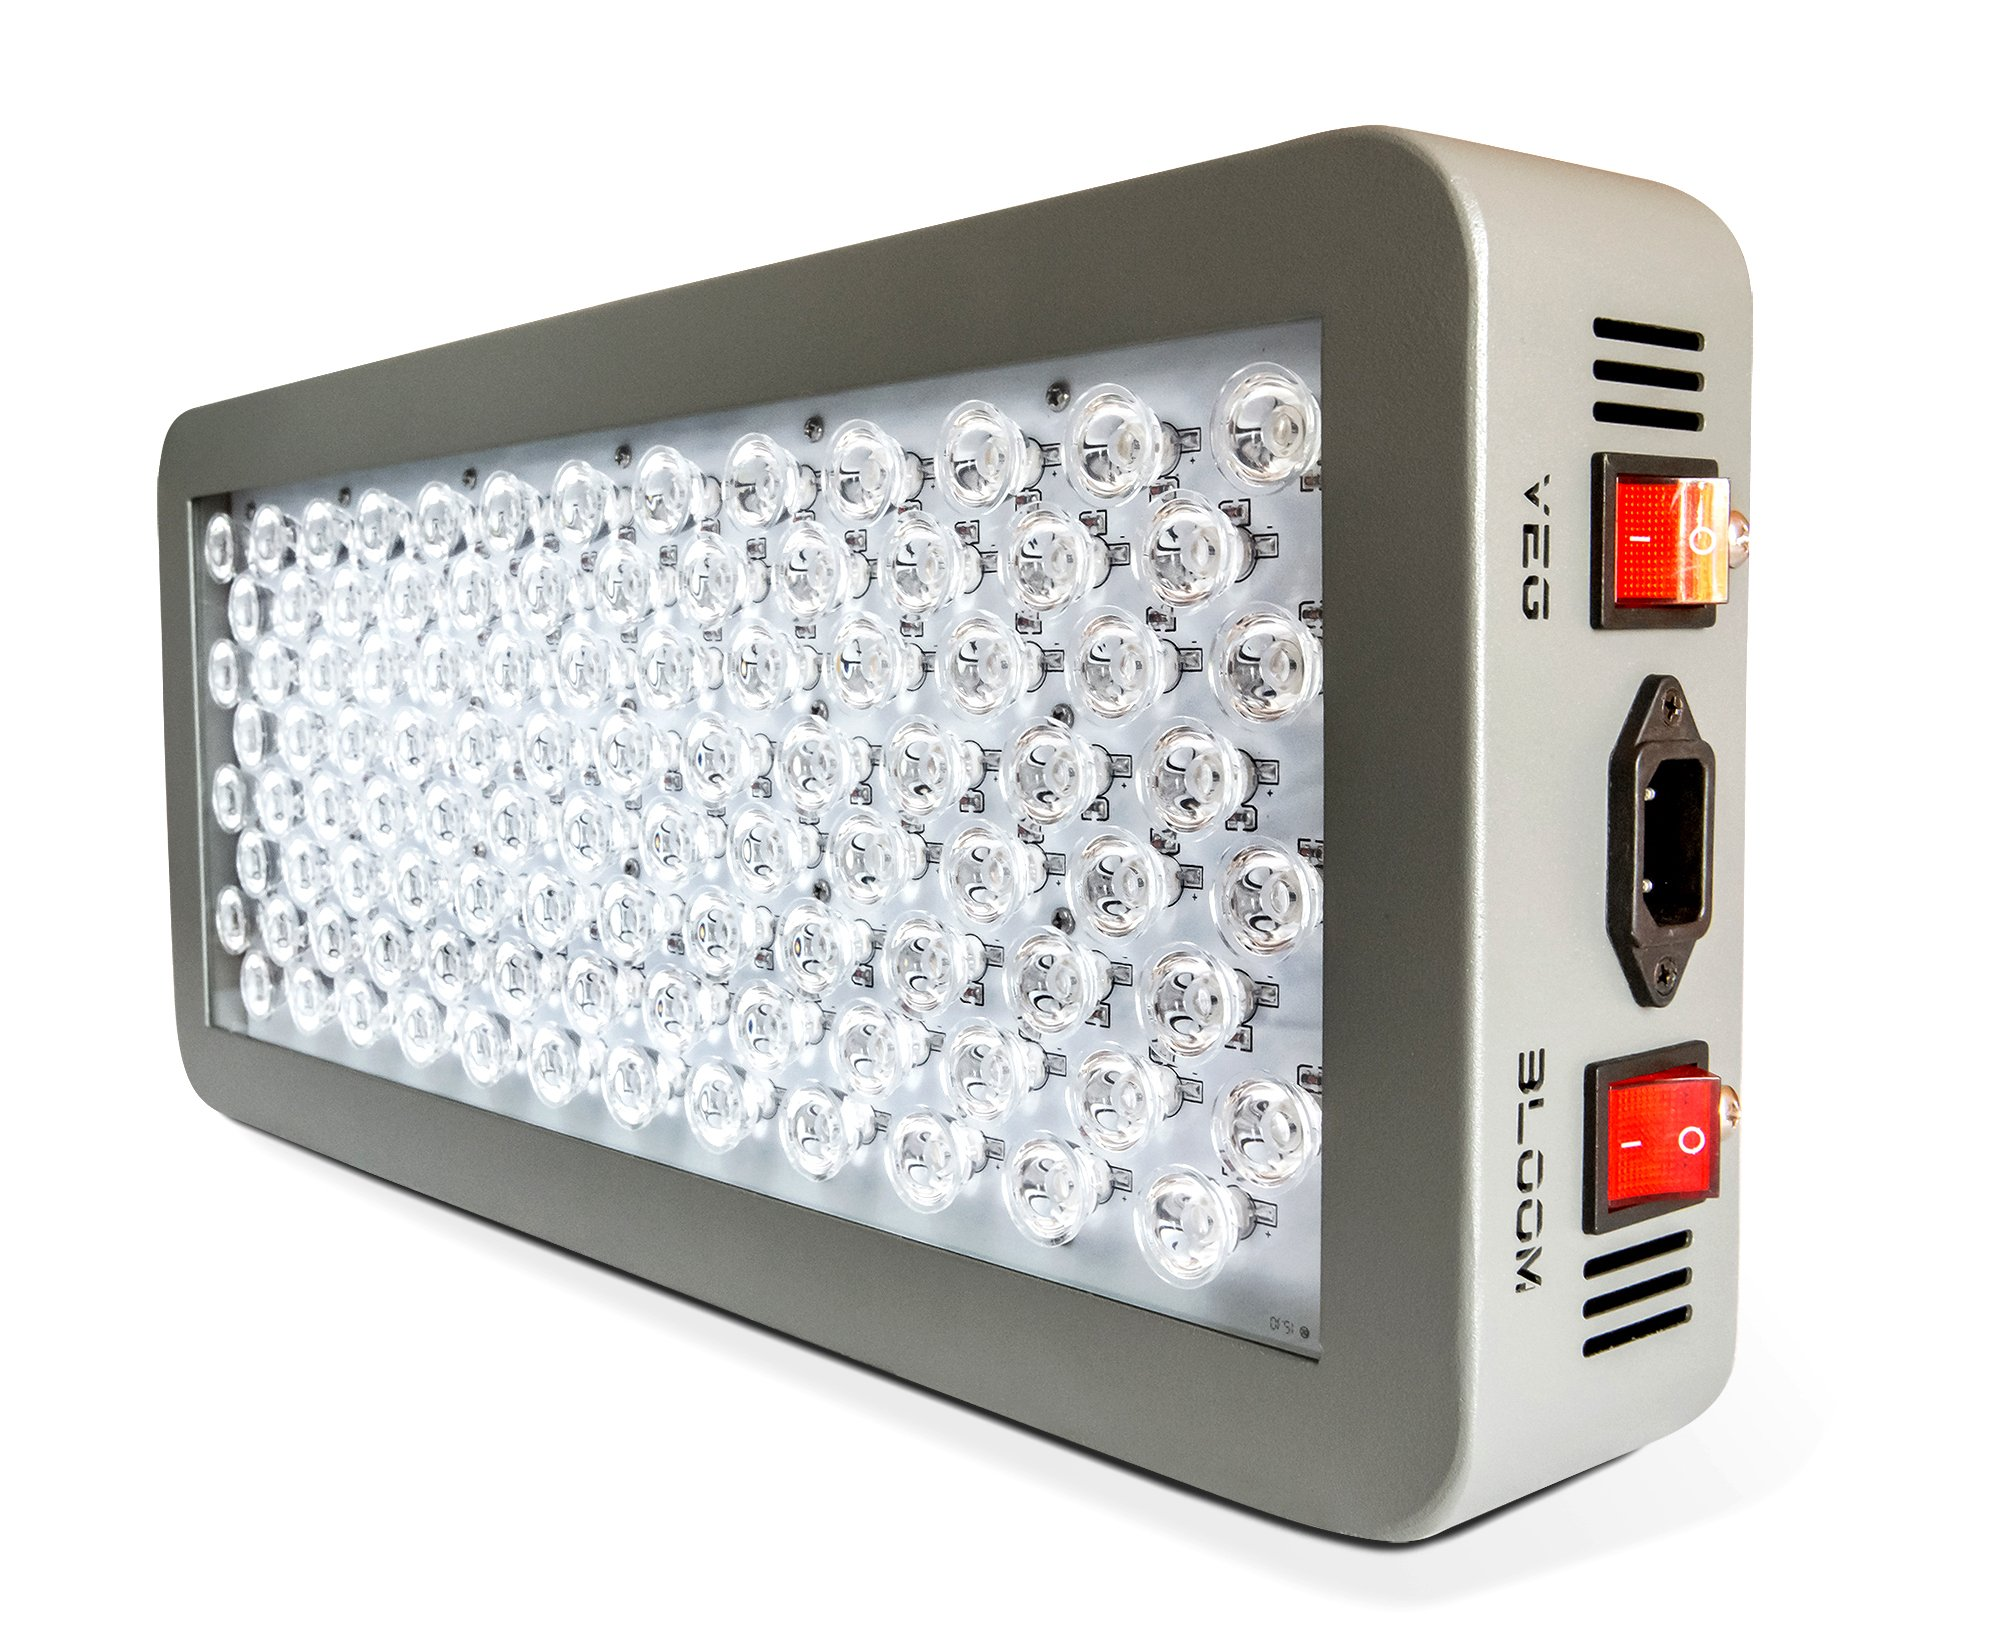 Advanced Platinum Series P300 300w 12-band LED Grow Light - DUAL VEG/FLOWER FULL SPECTRUM by PlatinumLED Grow Lights